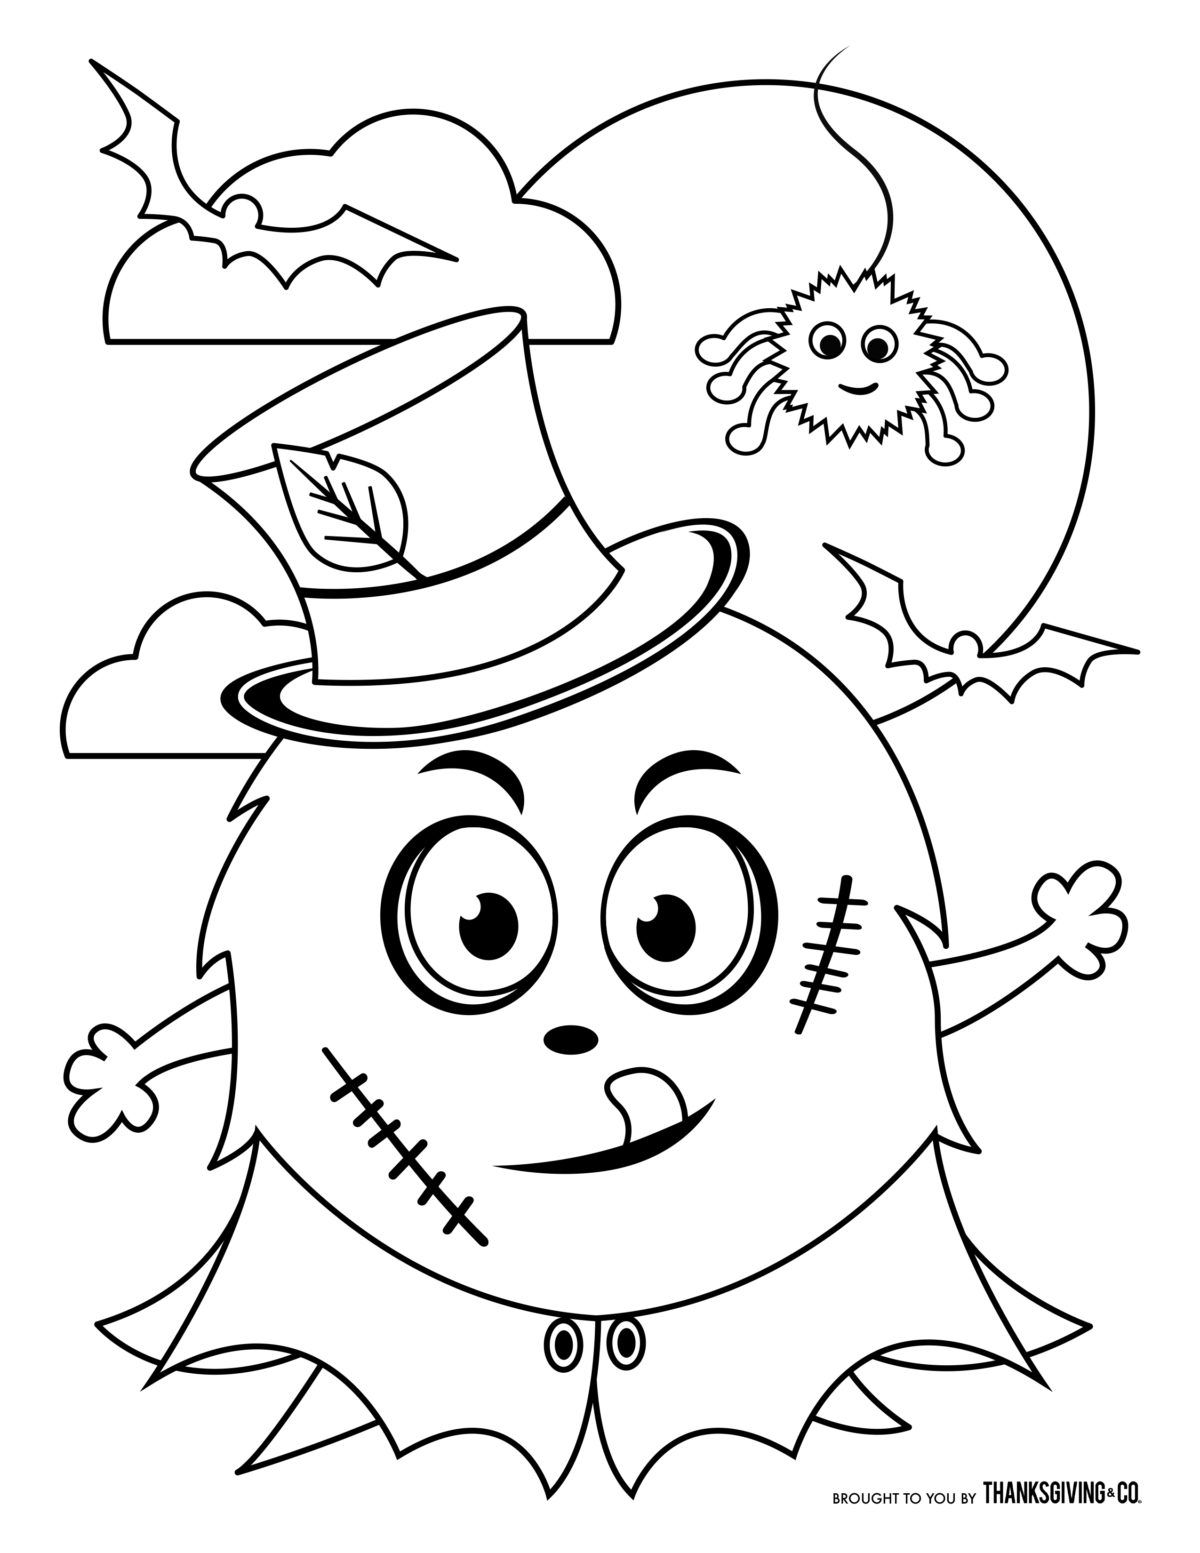 Free Halloween Coloring Pages For Kids Or For The Kid In You Monster Coloring Pages Free Halloween Coloring Pages Halloween Coloring Pages